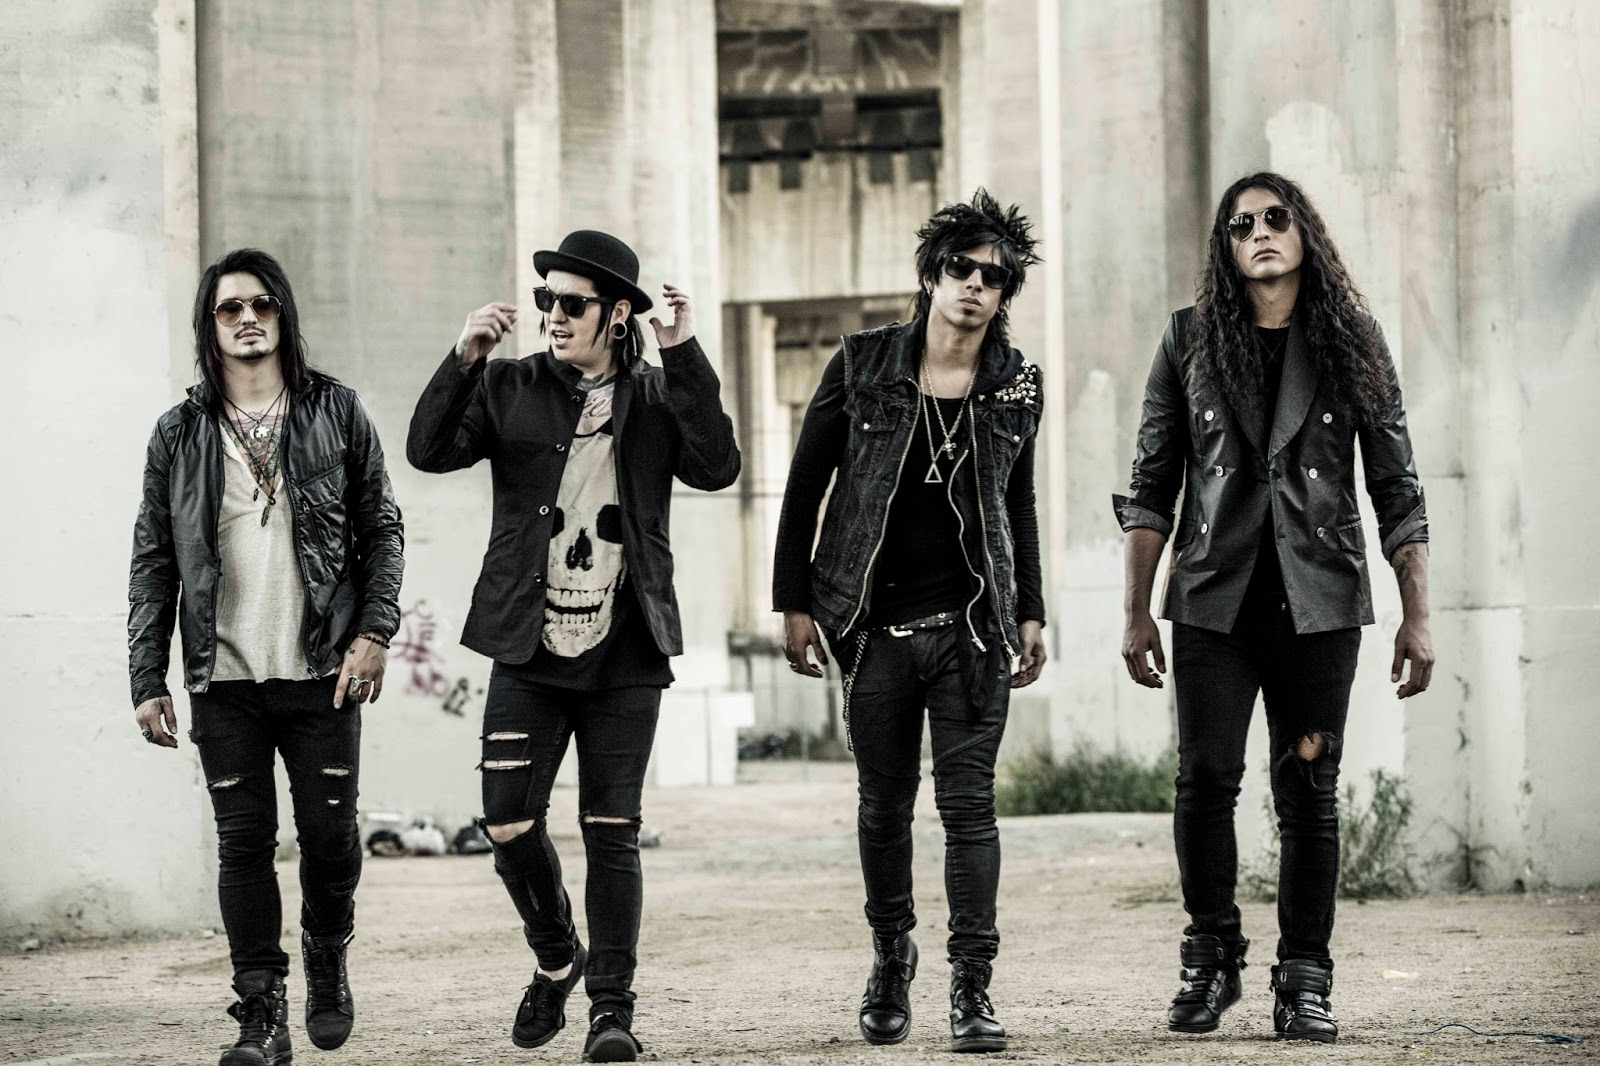 Escape the Fate is coming to Asia!